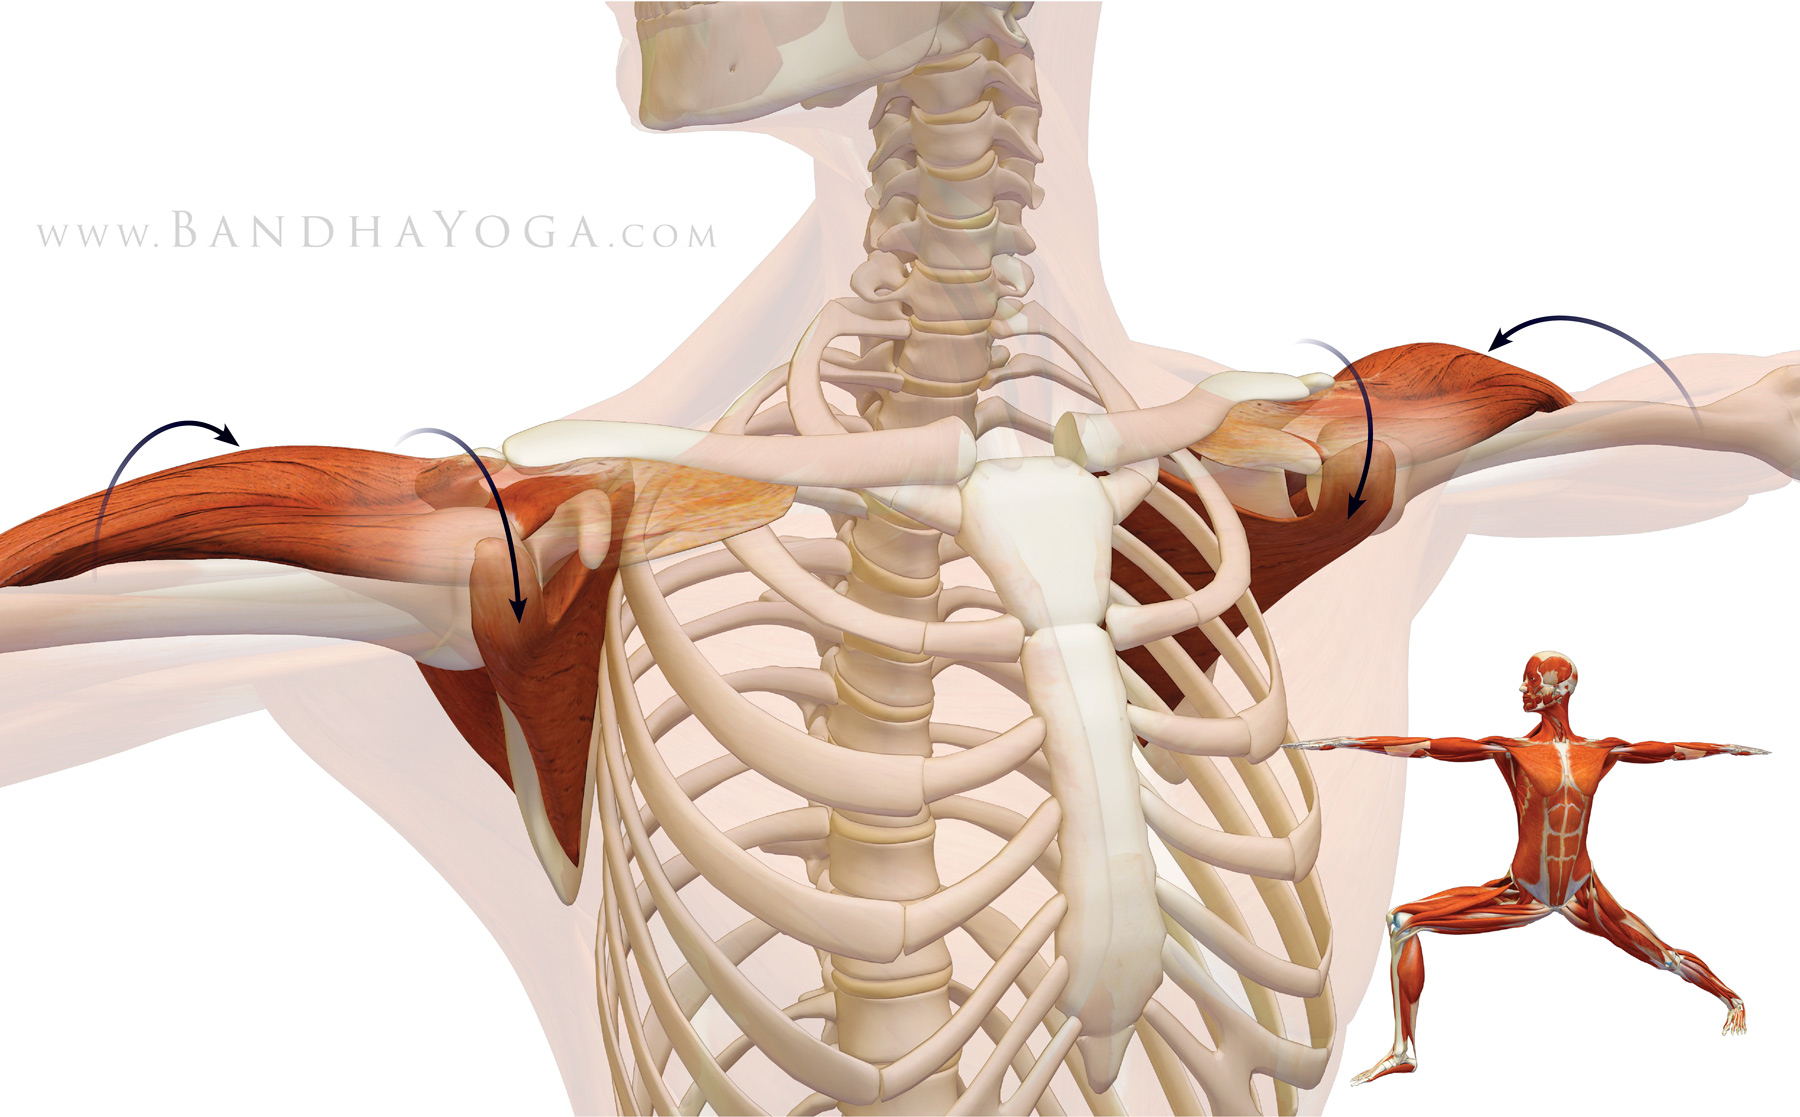 biomechanics of the shoulder Chronic shoulder problems are the most common upper extremity problem in the  general population and in sports these injuries can occur at any age but are.